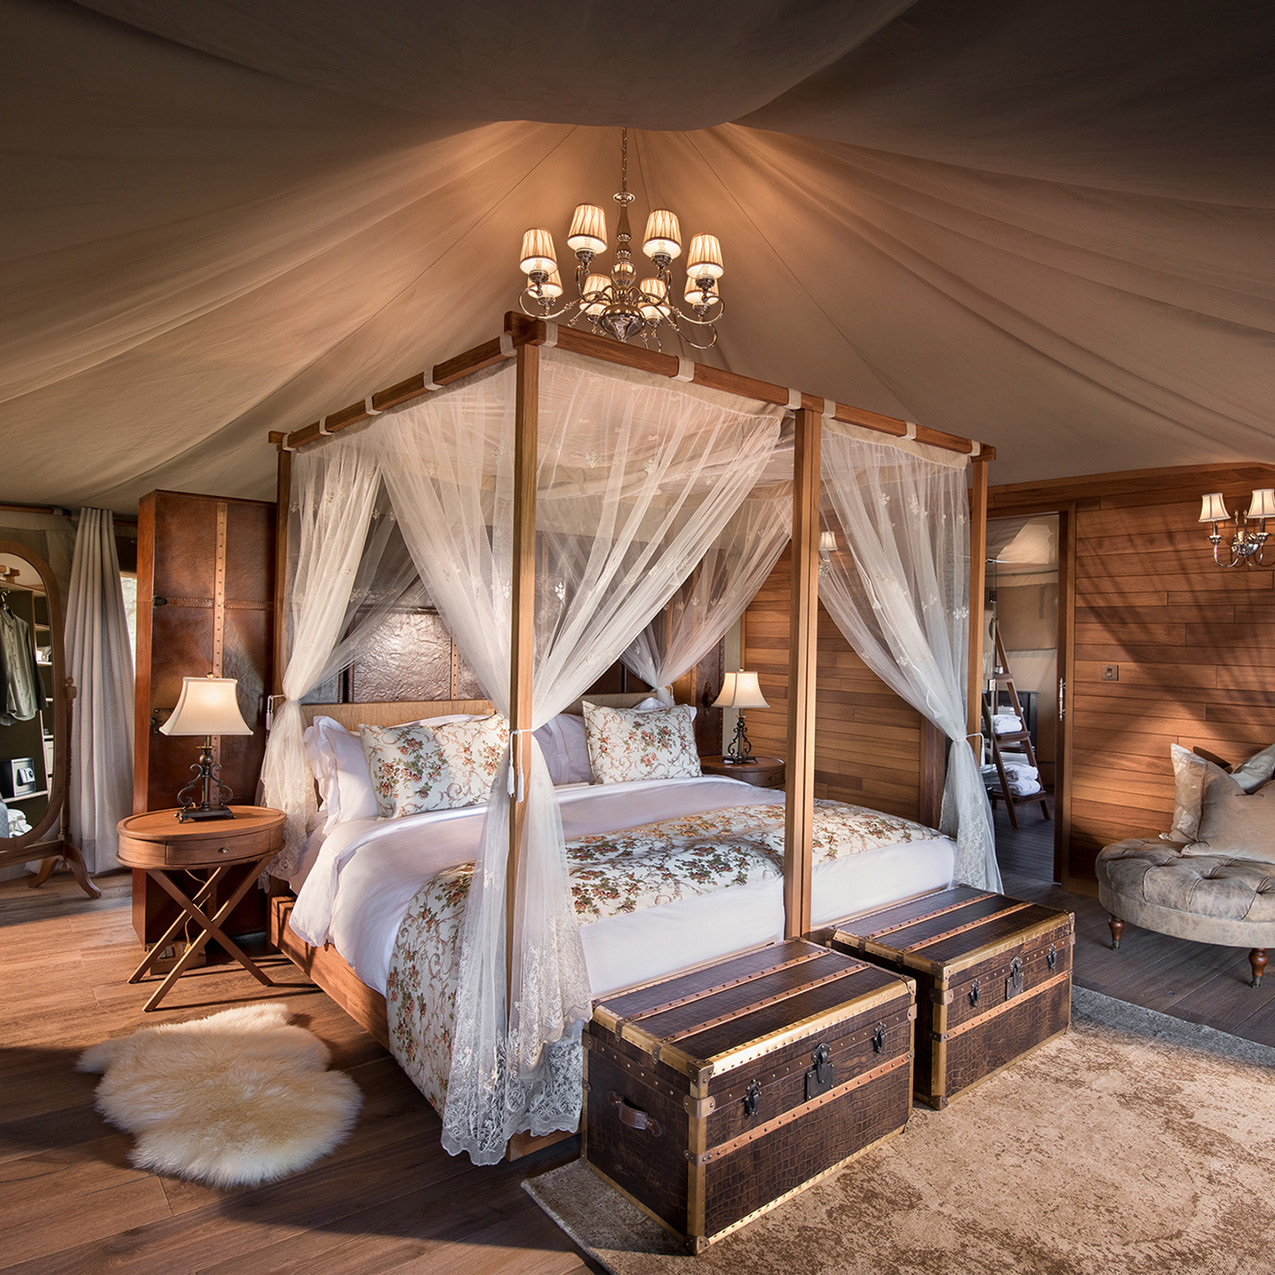 Family Tent Bedroom 2